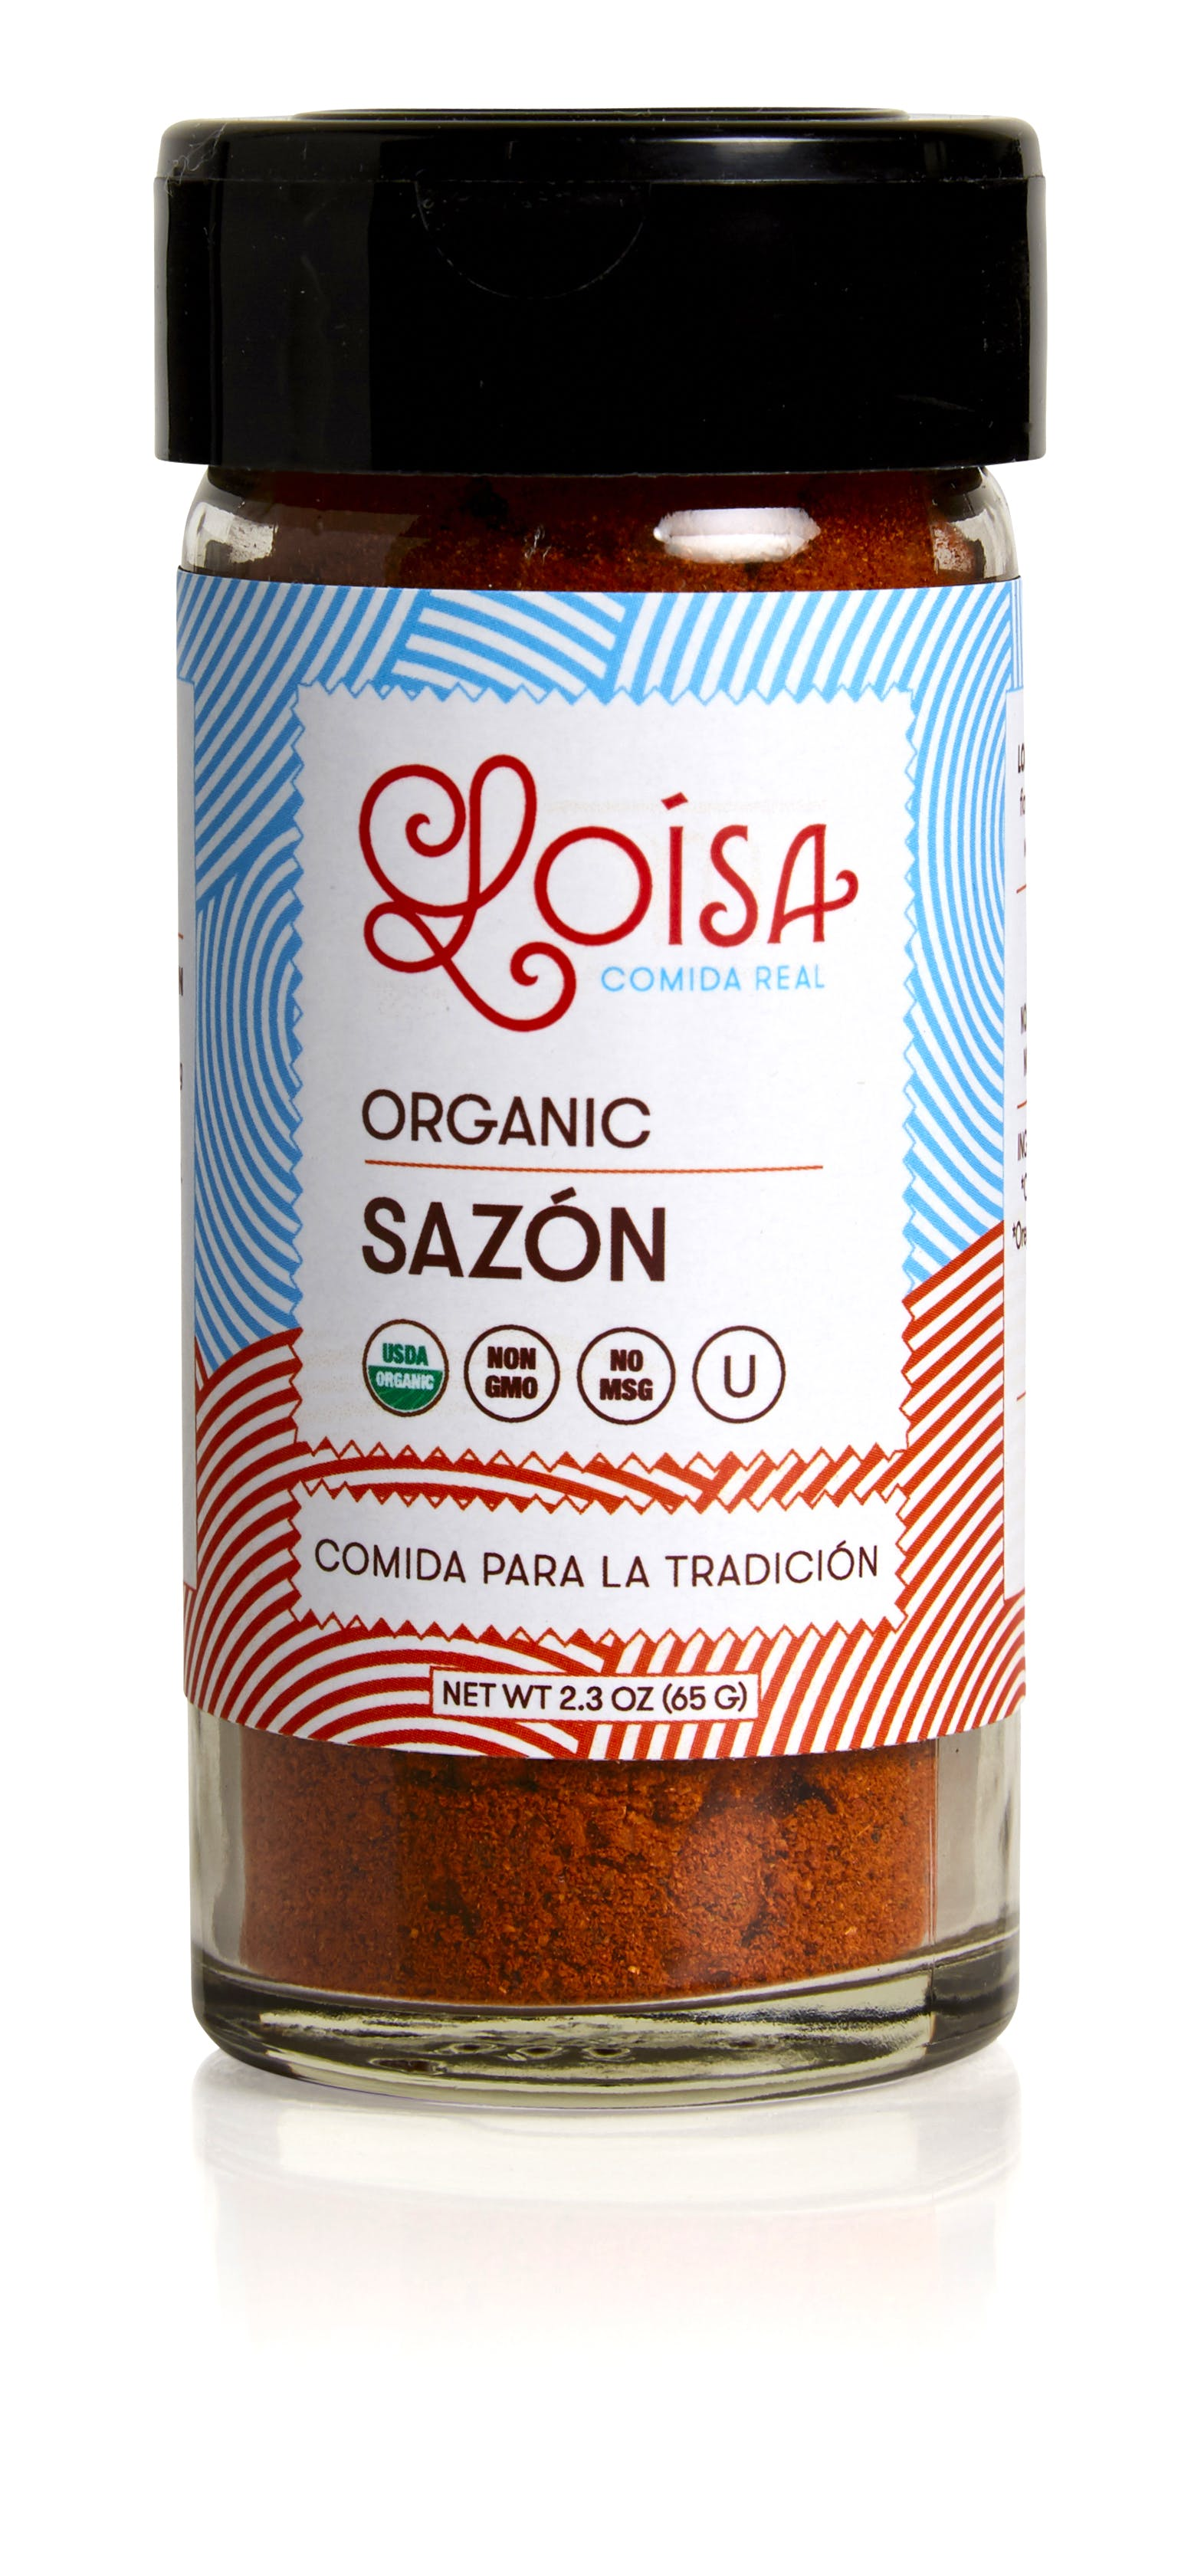 Loisa - Organic Sazon Seasoning